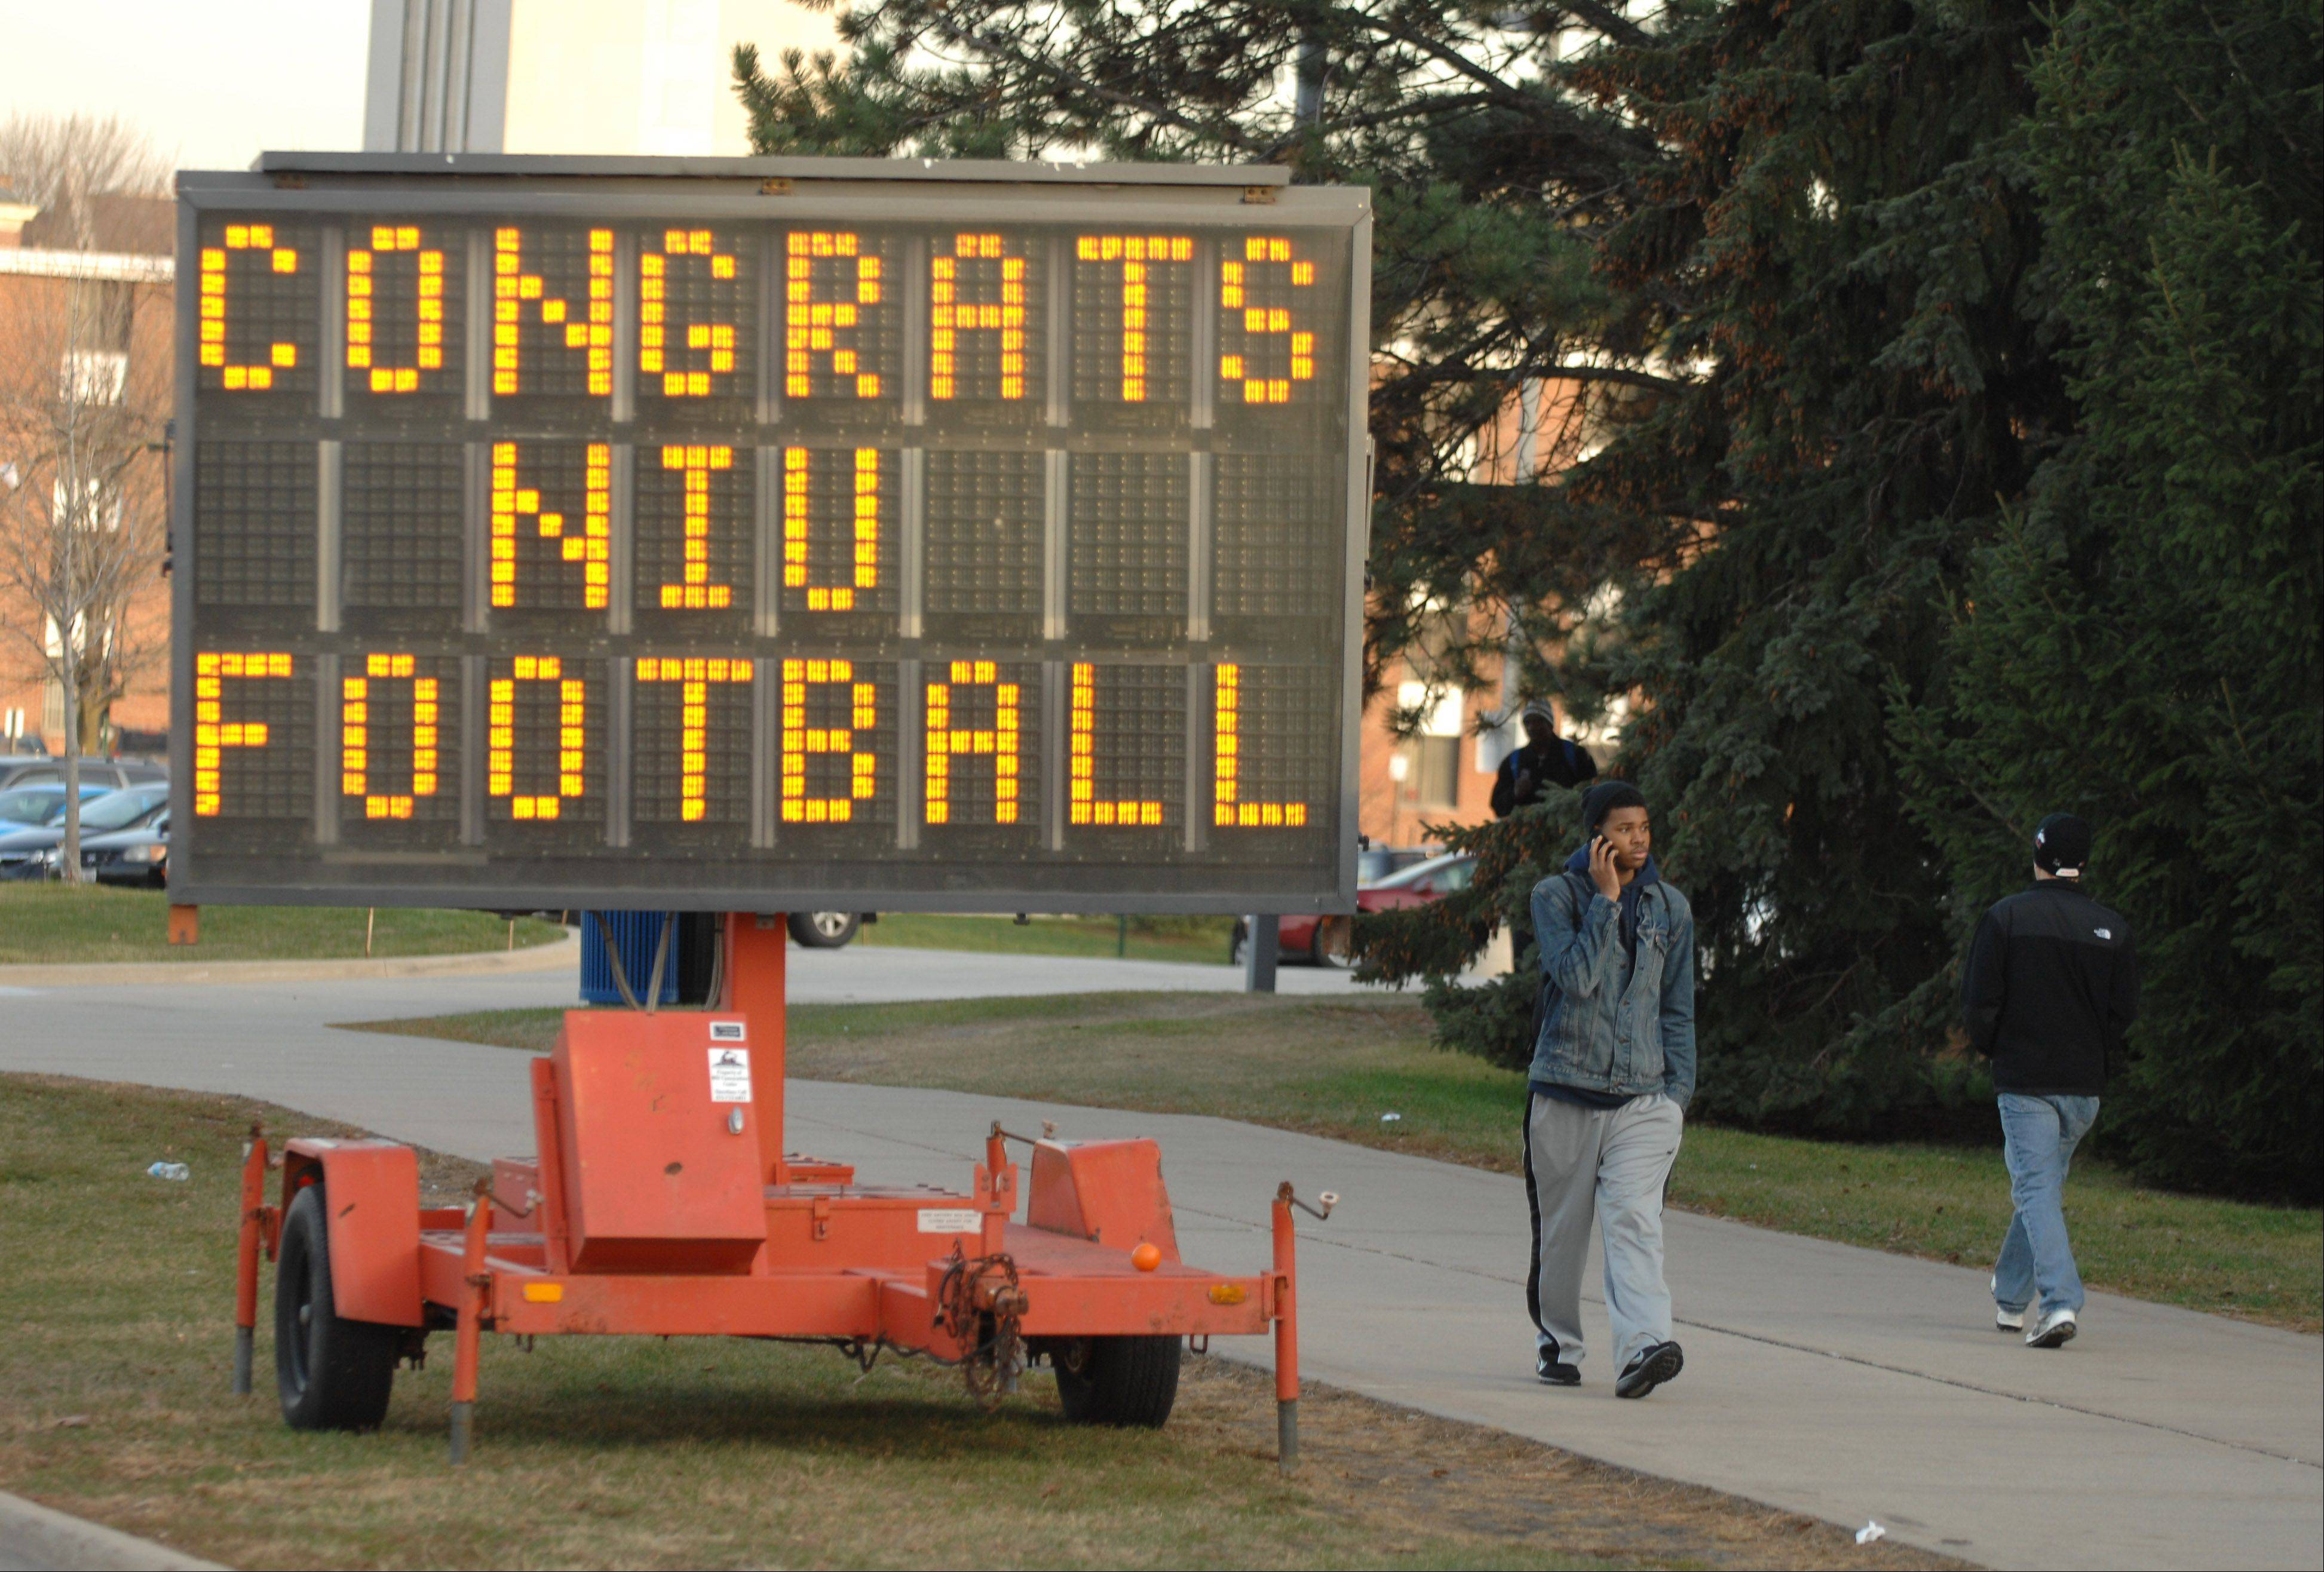 Pedestrians walk past a sign congratulating the football team for qualifying for the Orange Bowl. The sign is on Lucinda Avenue in DeKalb.